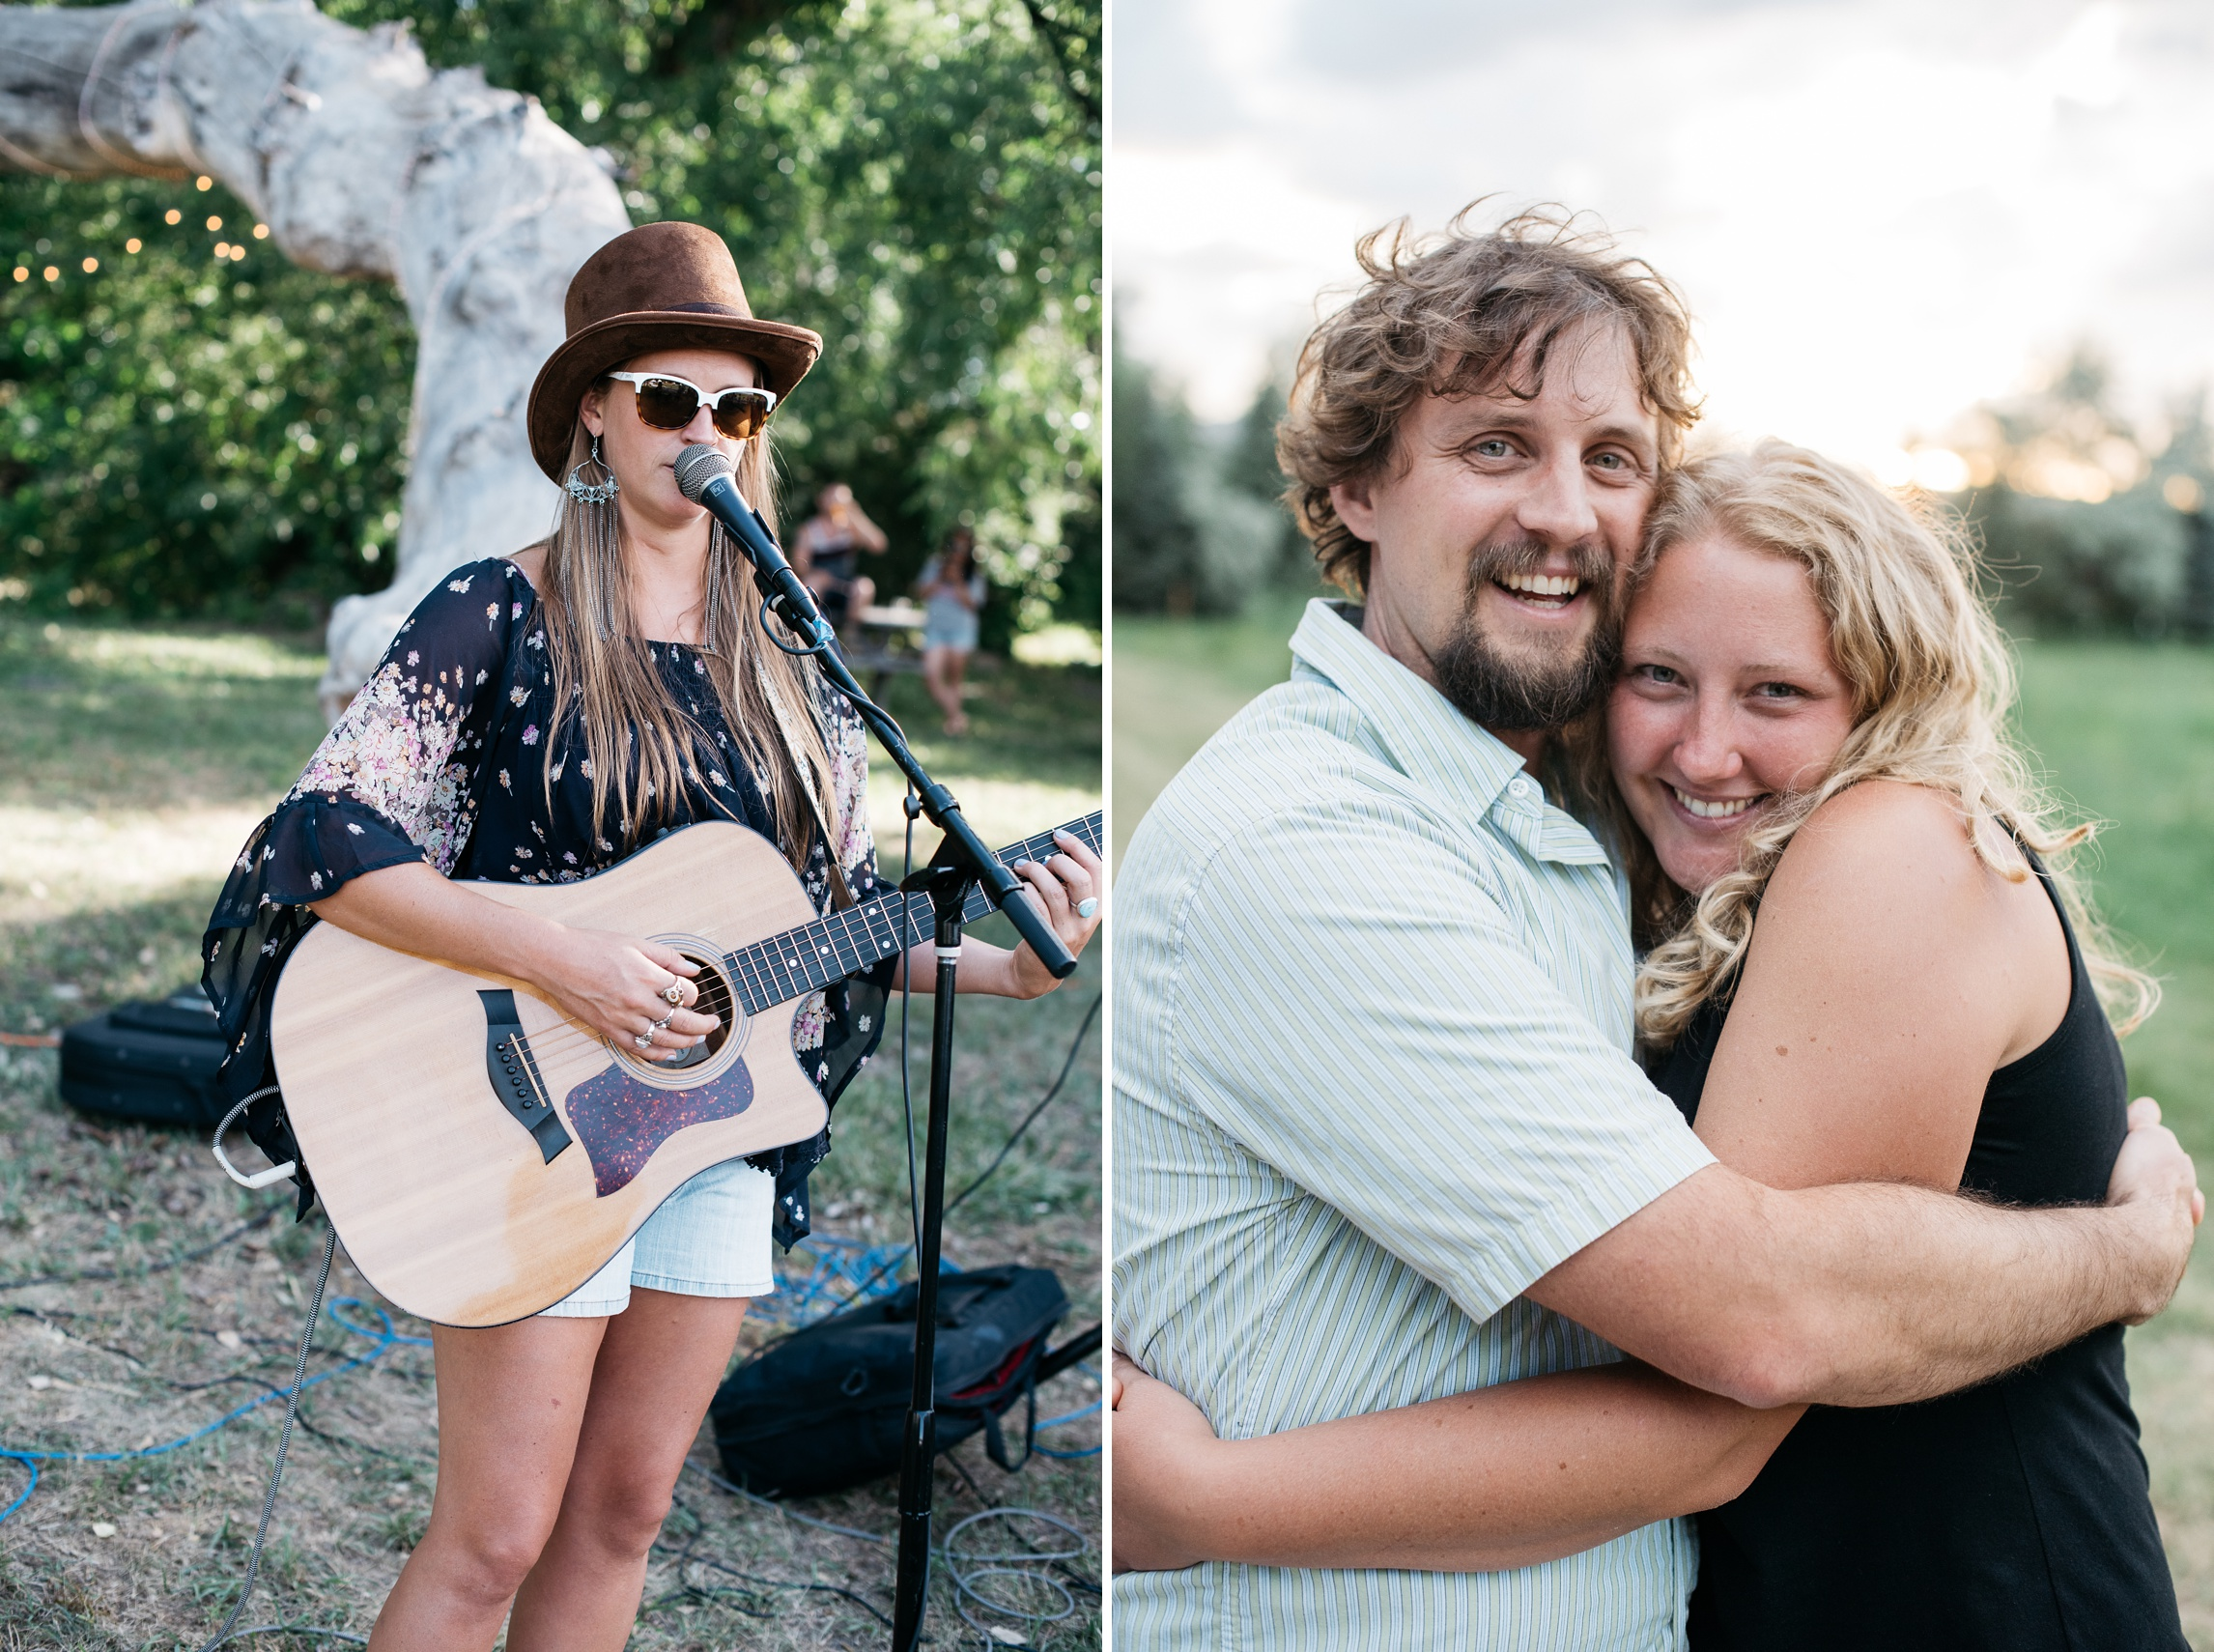 Elise Wunder and Tony and HIlary Kukla at the Fortified Collaborations Heart of Summer Farm Dinner at Happy Heart Farm in Fort Collins, Colorado. Event and portrait photography by Sonja Salzburg of Sonja K Photography.